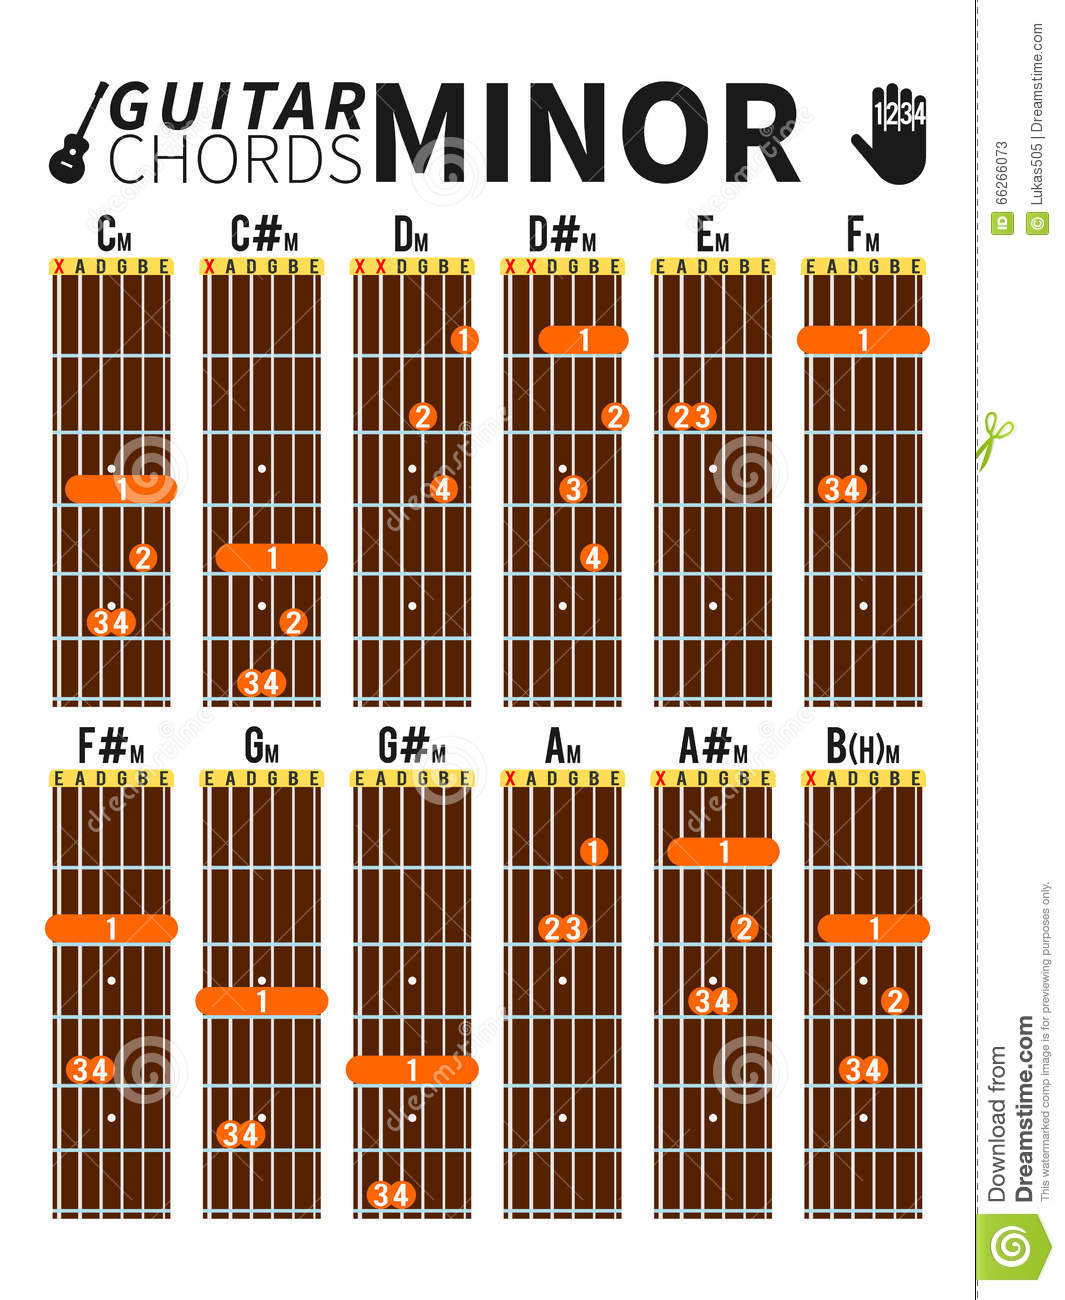 Minor Chords Chart For Guitar With Fingers Position Stock Vector - Image: 66266073